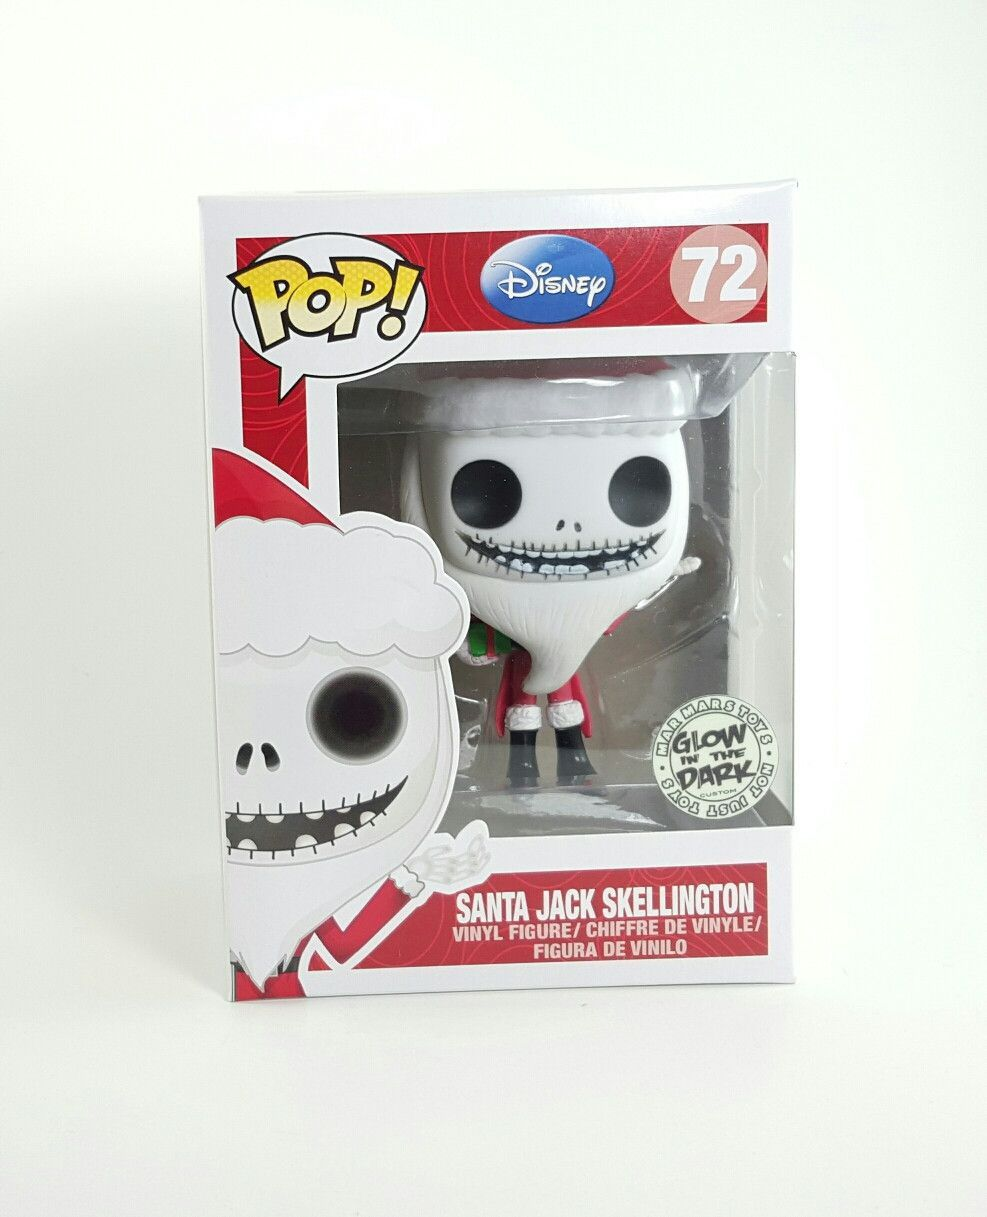 f3c4d3a42d SANTA JACK SKELLINGTON DISNEY TIM BURTON S THE NIGHTMARE BEFORE CHRISTMAS  FUNKO POP 72 GLOW IN THE DARK